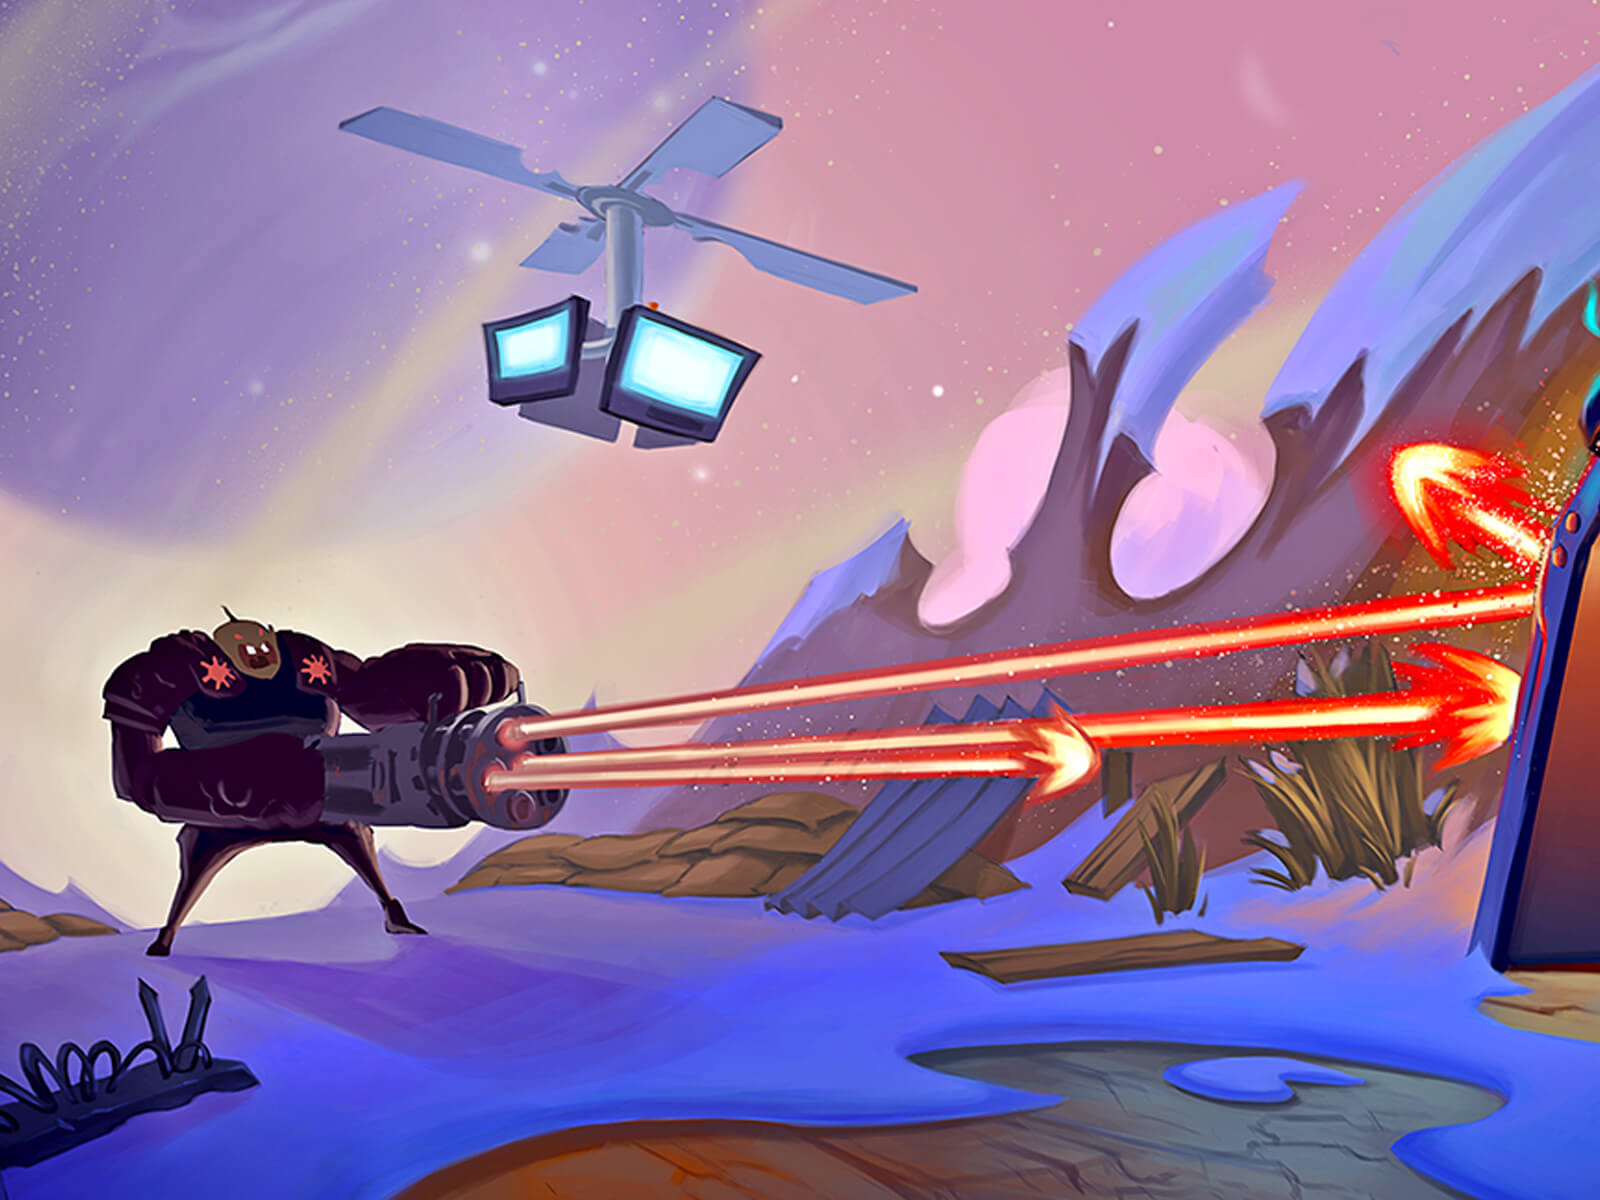 digital painting of a cartoonish alien creature shooting fire from a huge gun while a drone hovers overhead